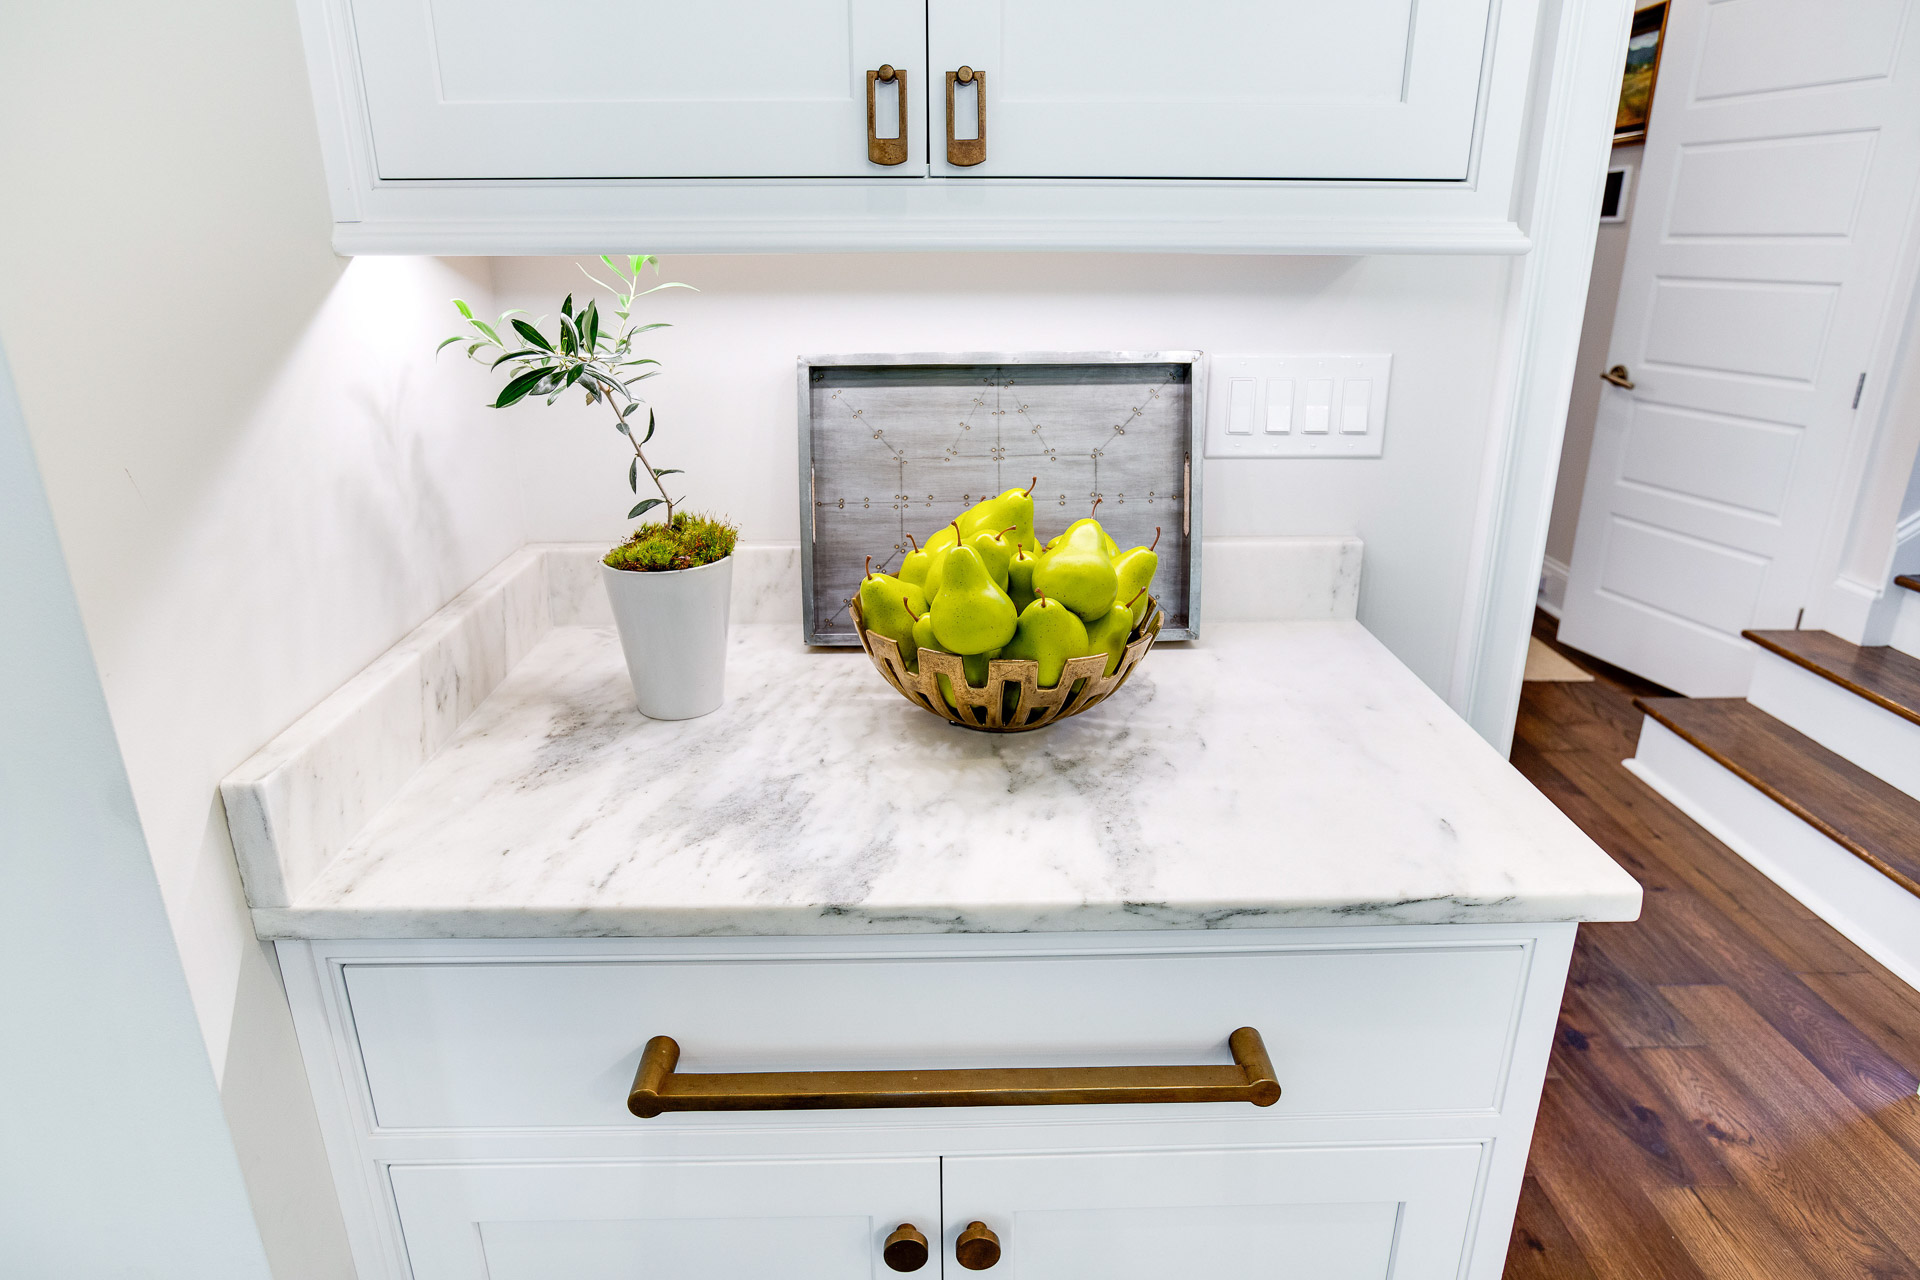 The cabinet hardware, pulls and knobs, are by Ashley Norton.